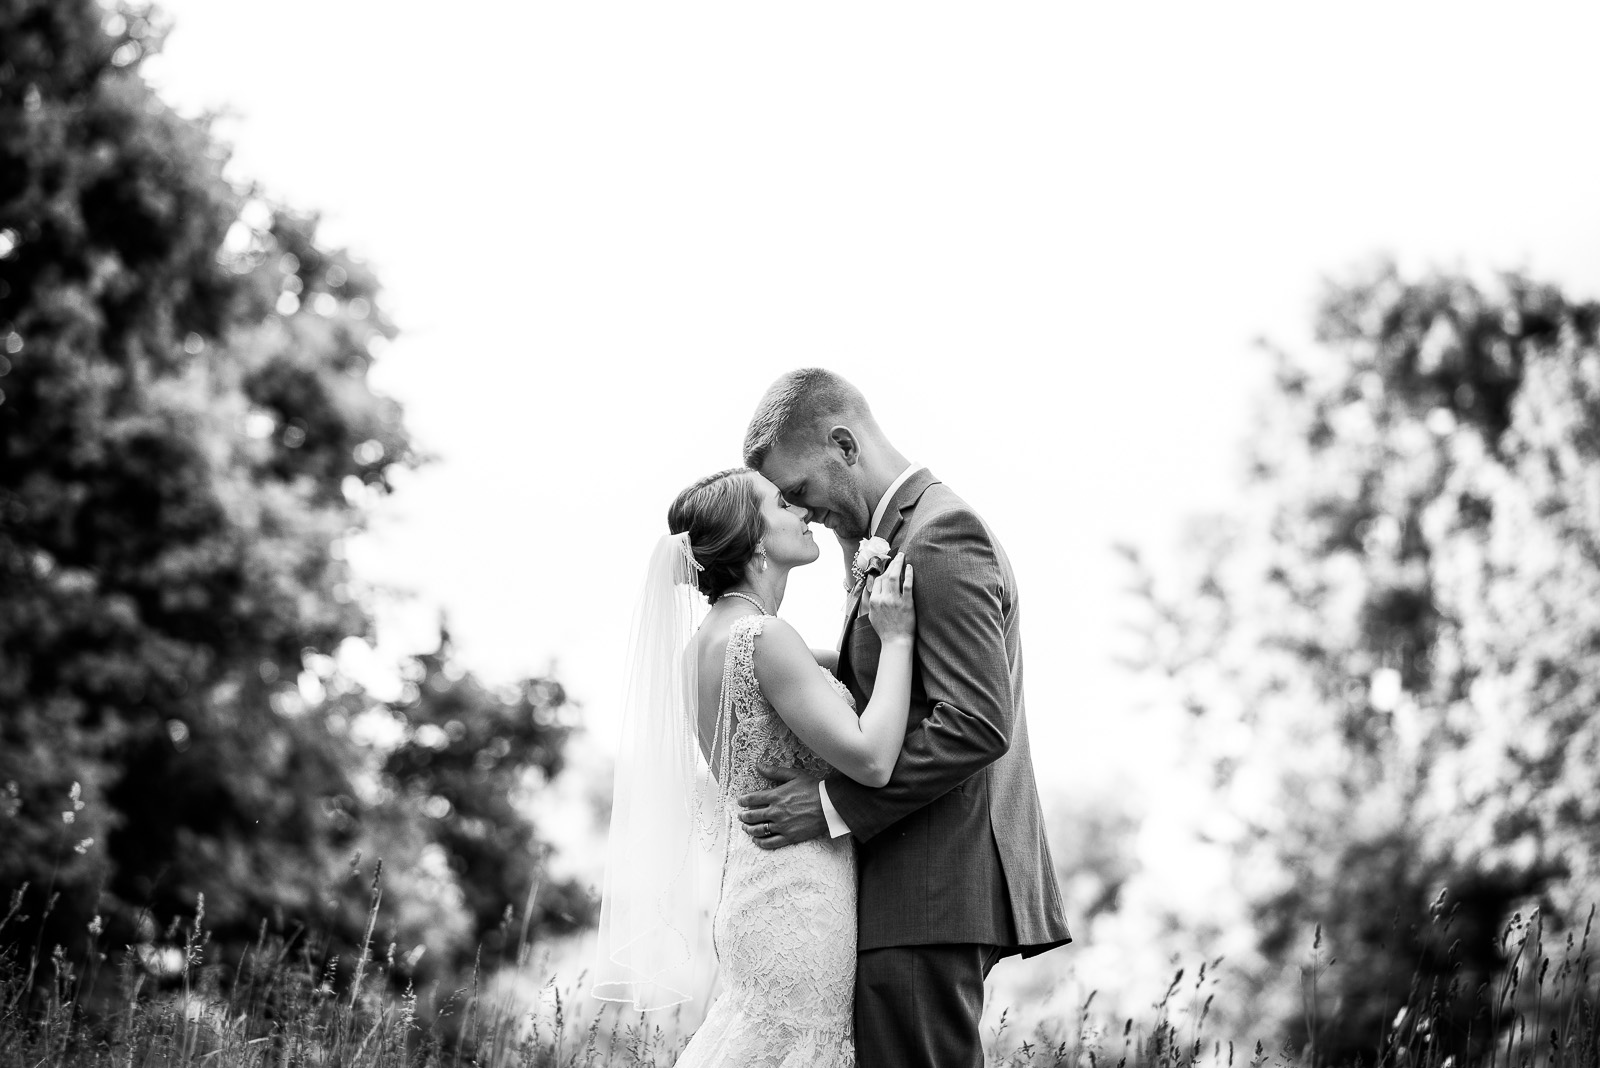 Eric_and_Christy_Photography_Blog_2016_Best_Wedding_Portraits-25